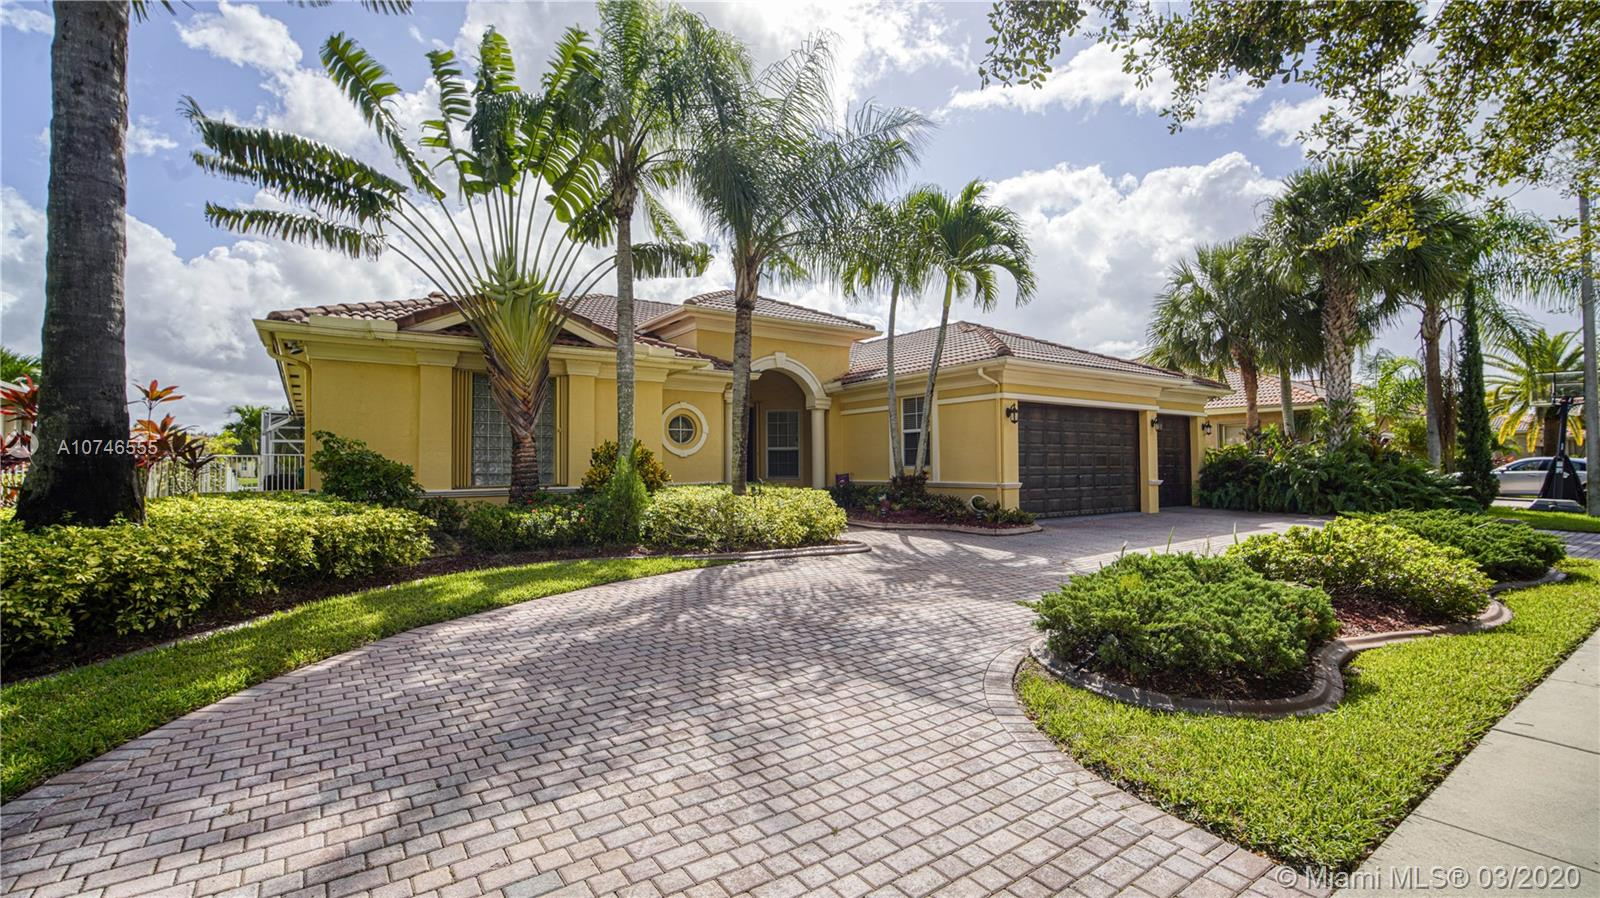 5058 Lakewood Dr, Cooper City, Florida